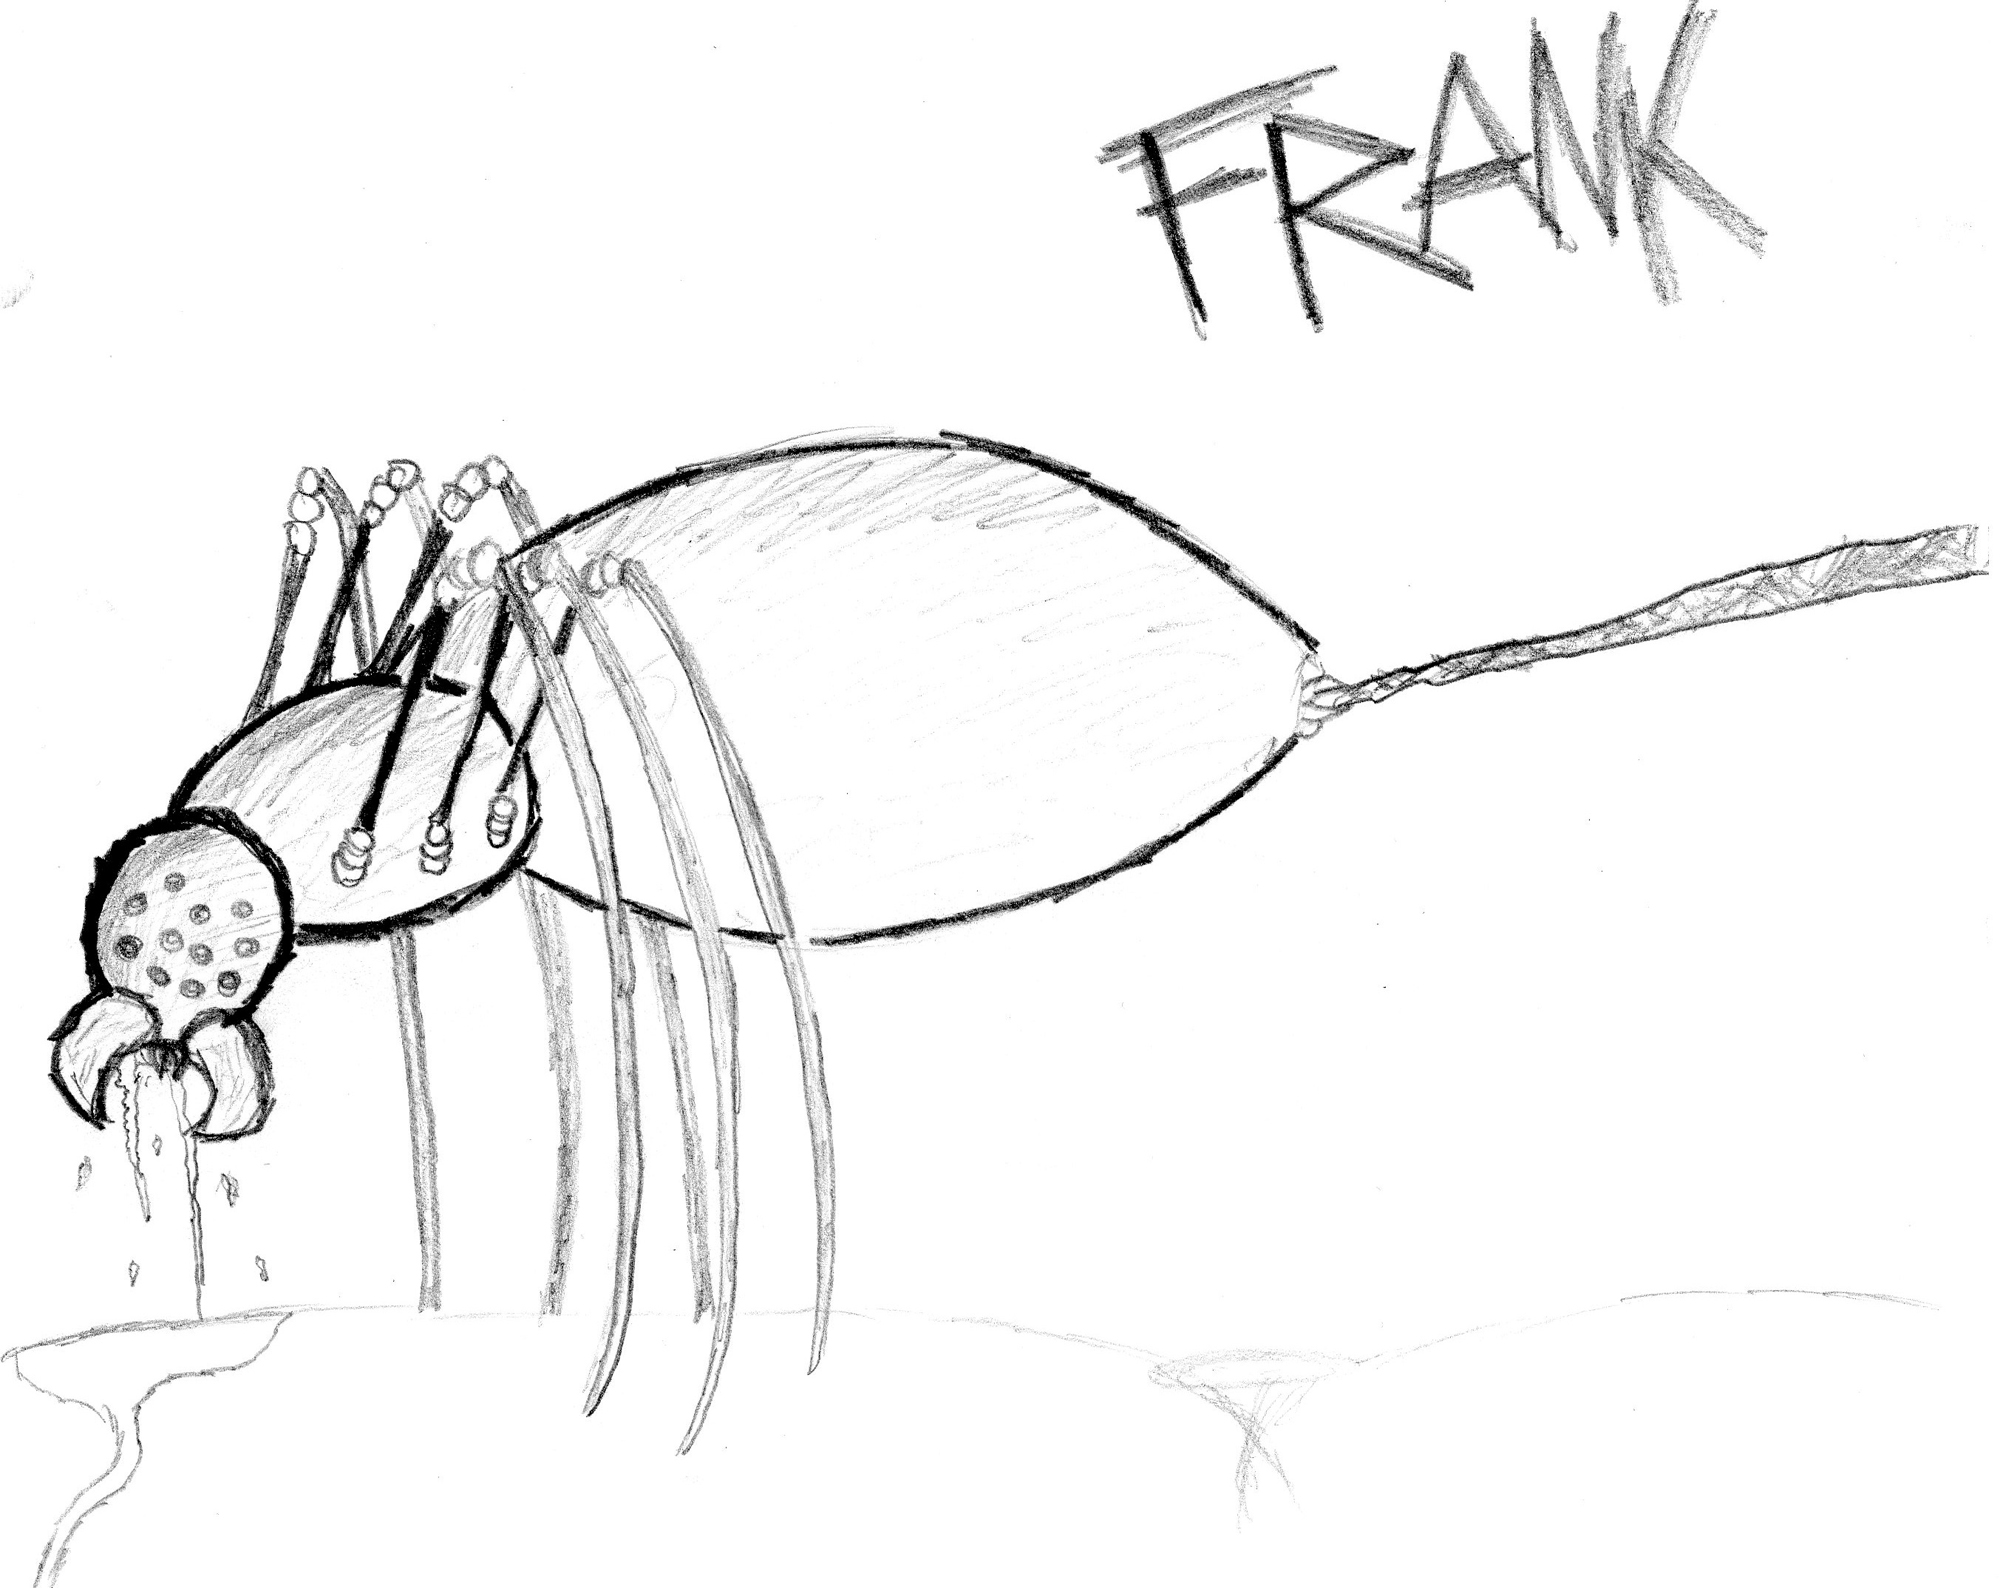 FRANK THE F@!#IN SPIDER